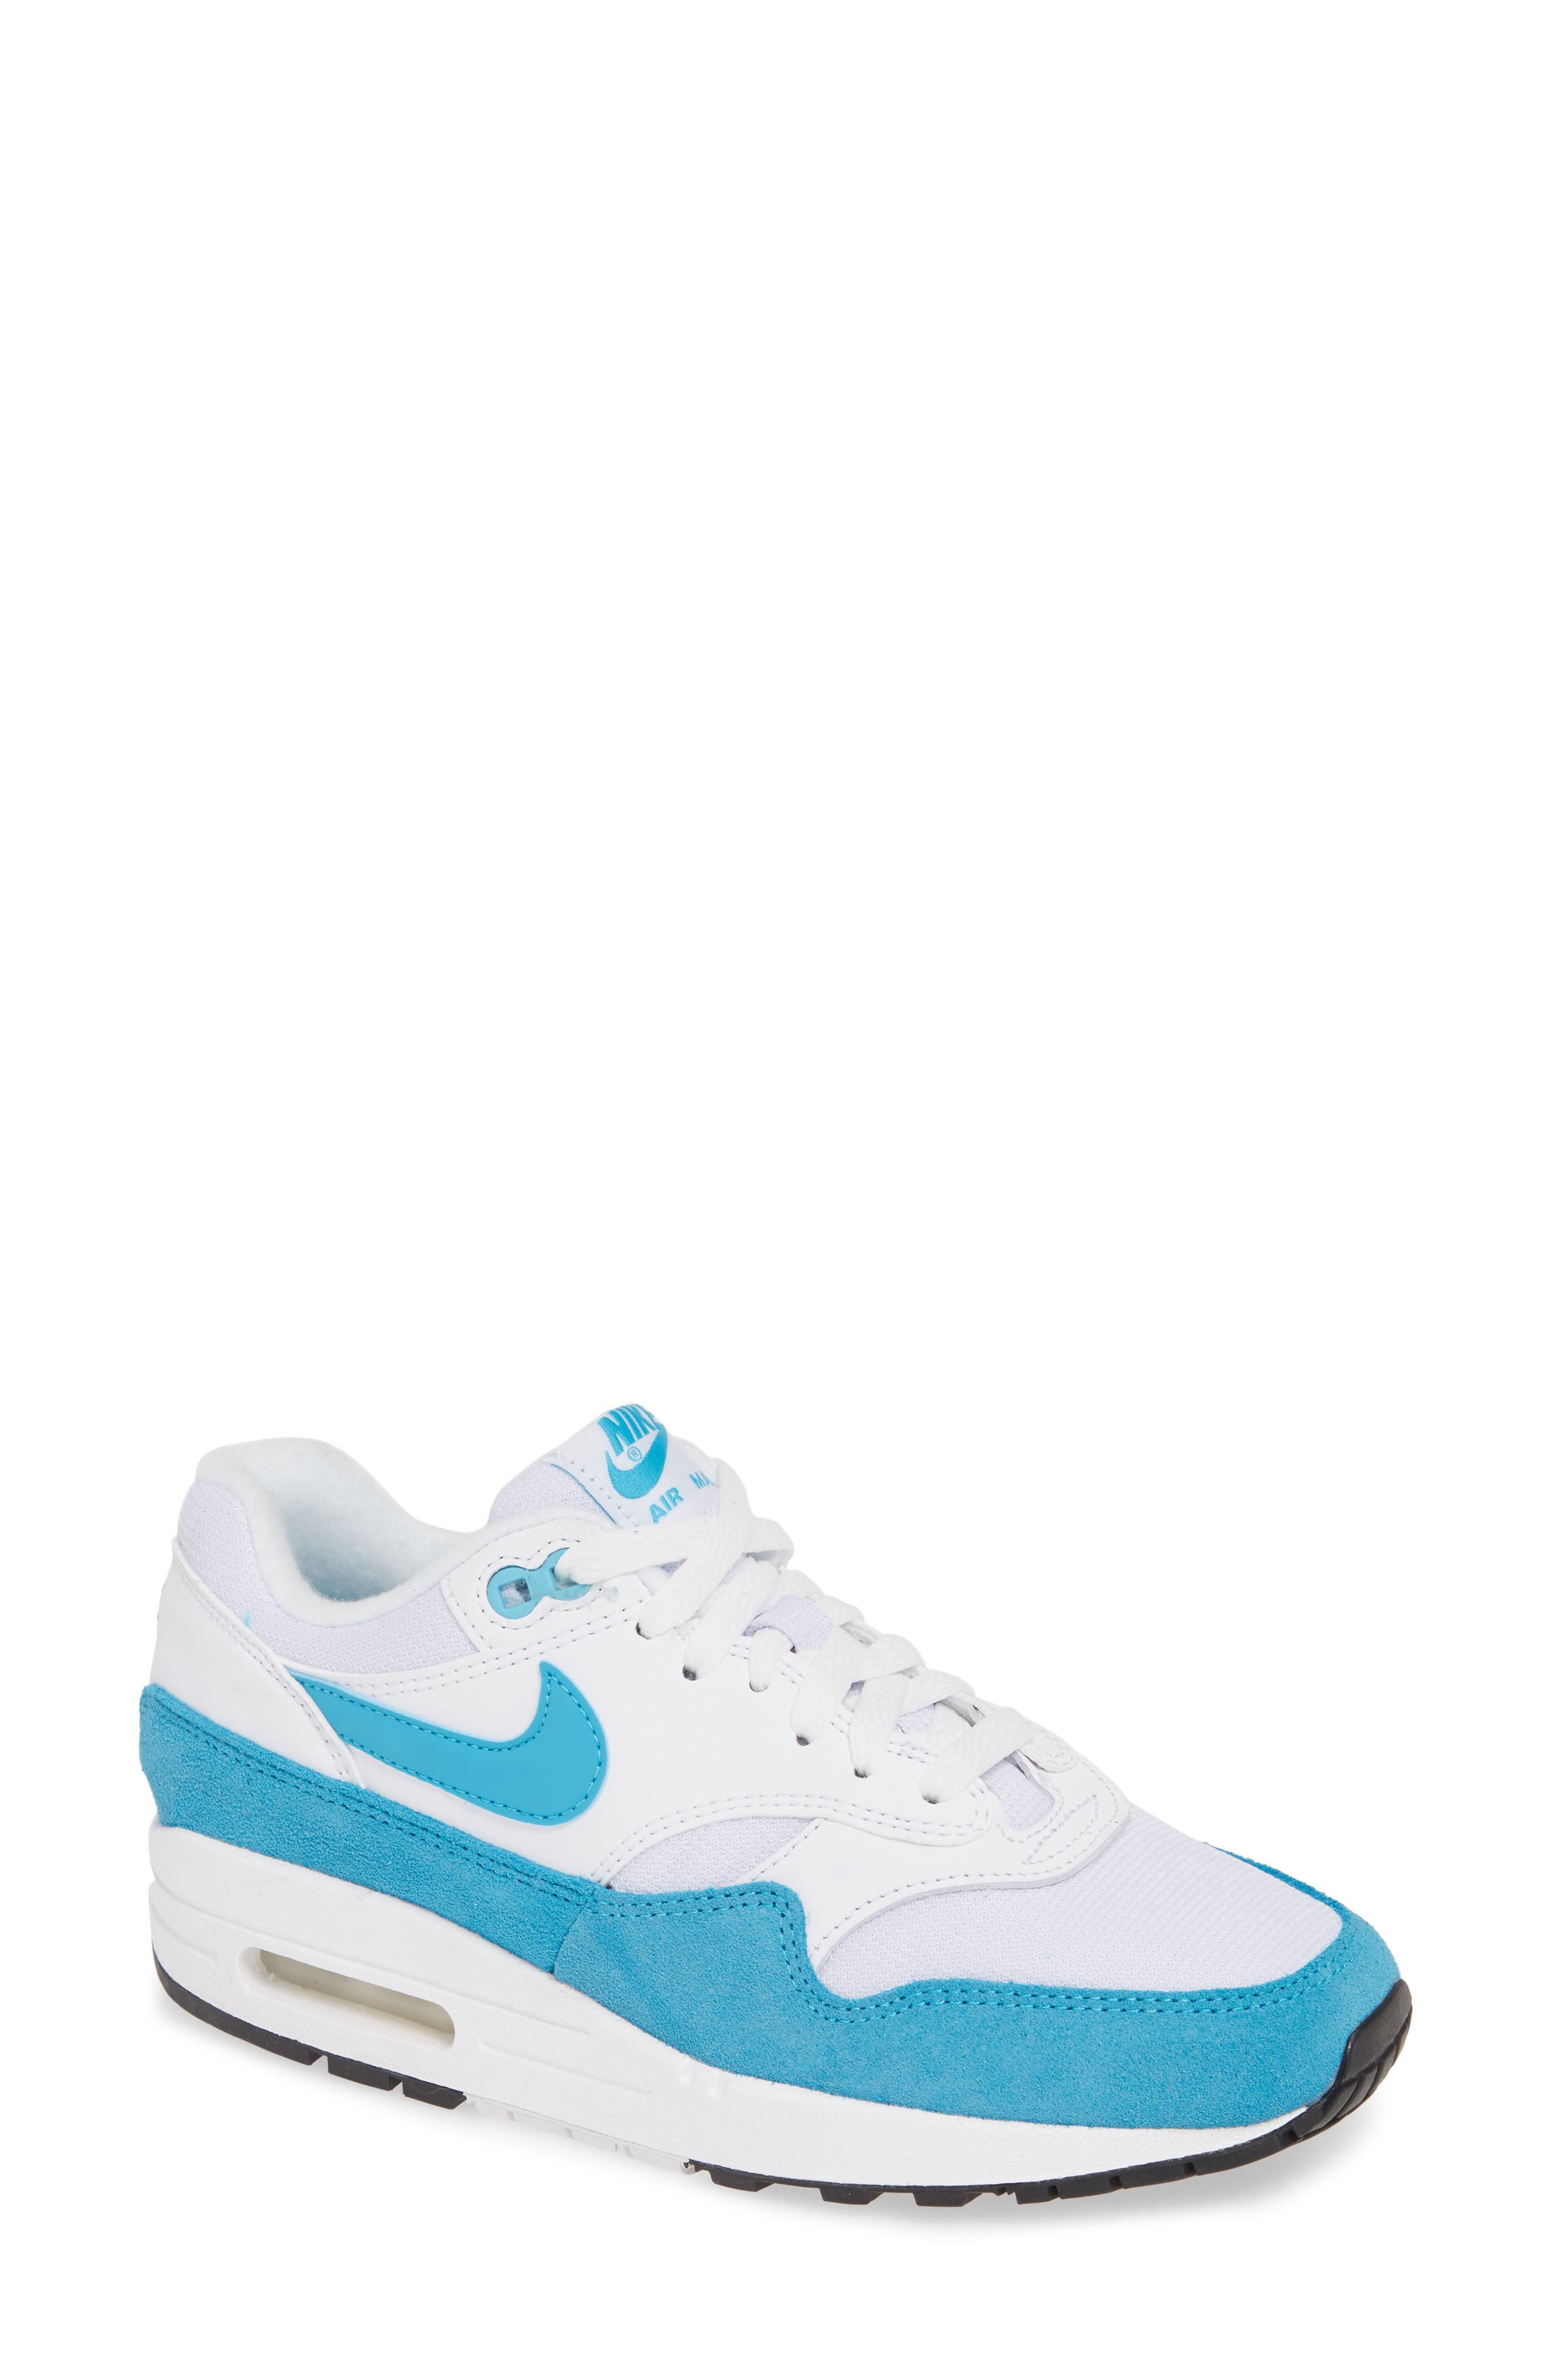 best loved 1dfe7 8abb7 Nike Air Max Shoes   Nordstrom